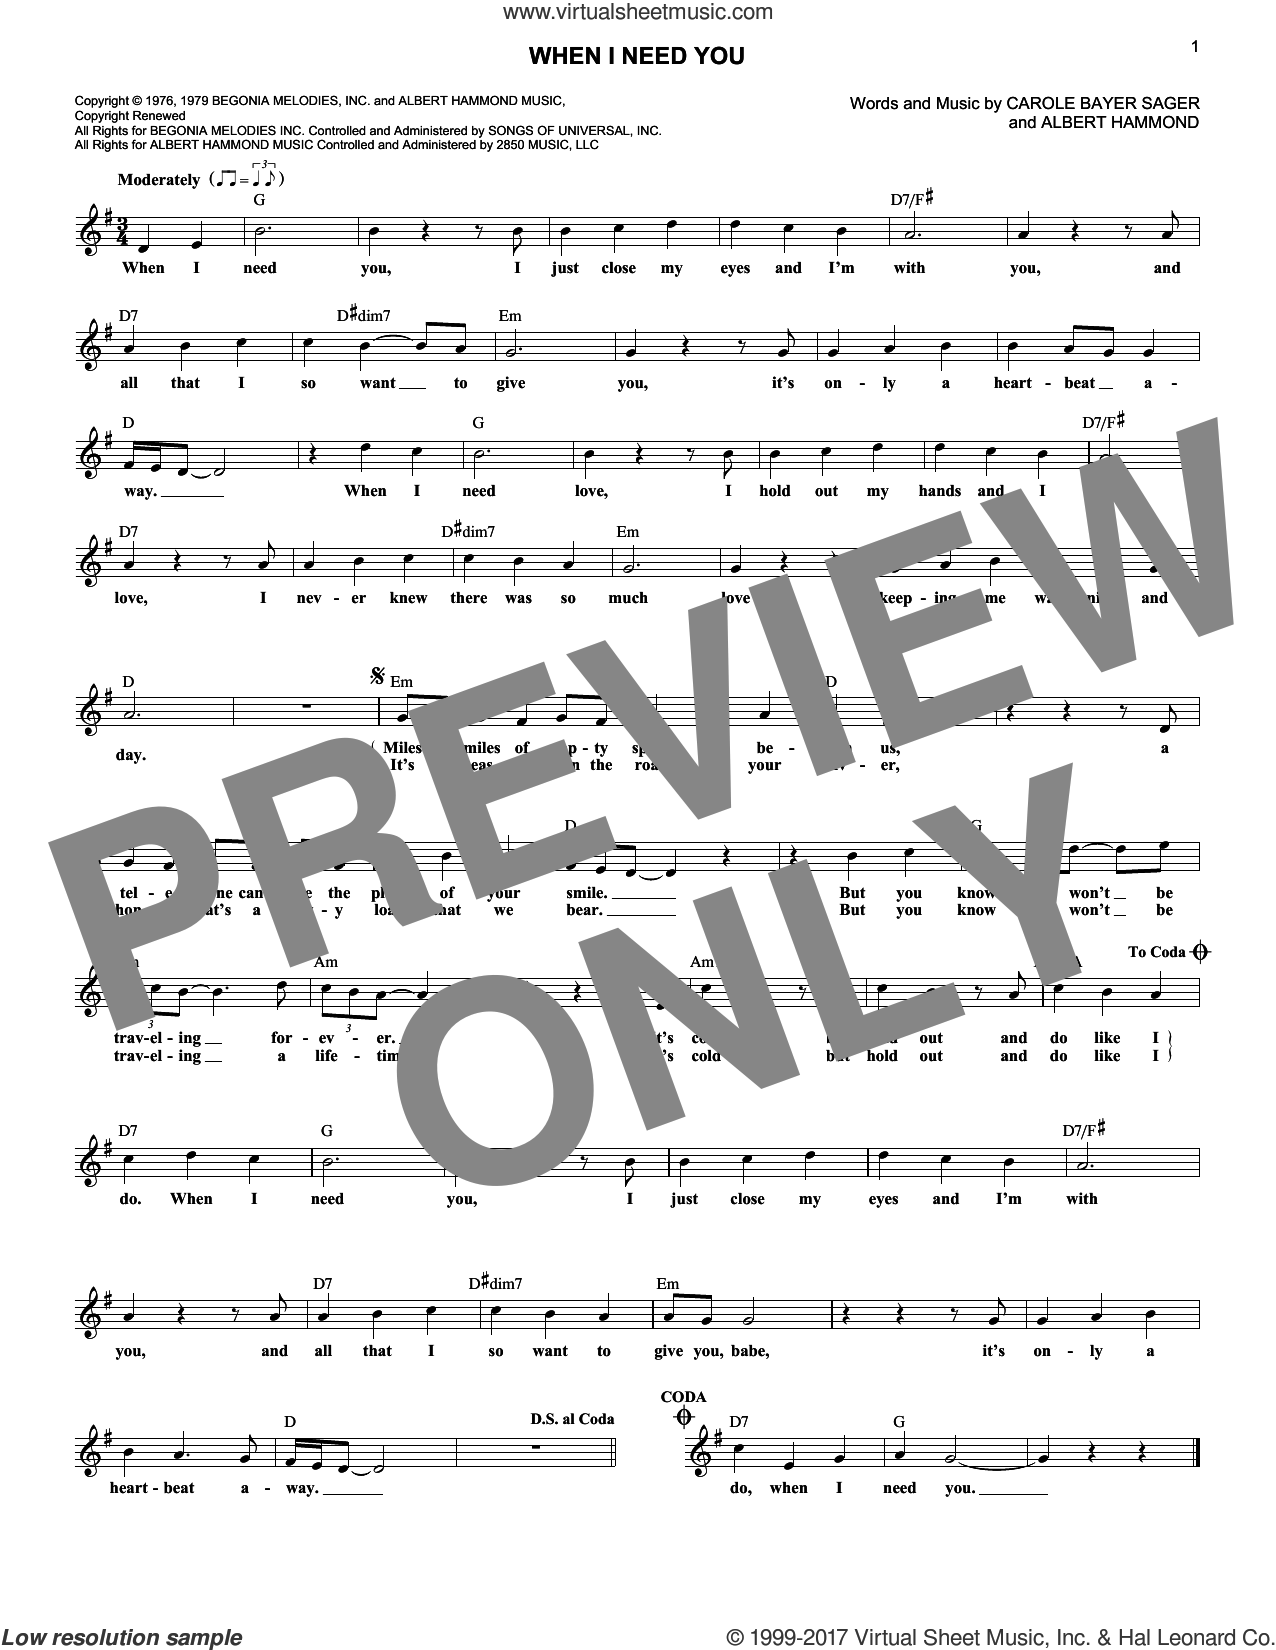 When I Need You sheet music for voice and other instruments (fake book) by Leo Sayer, Albert Hammond and Carole Bayer Sager, intermediate skill level